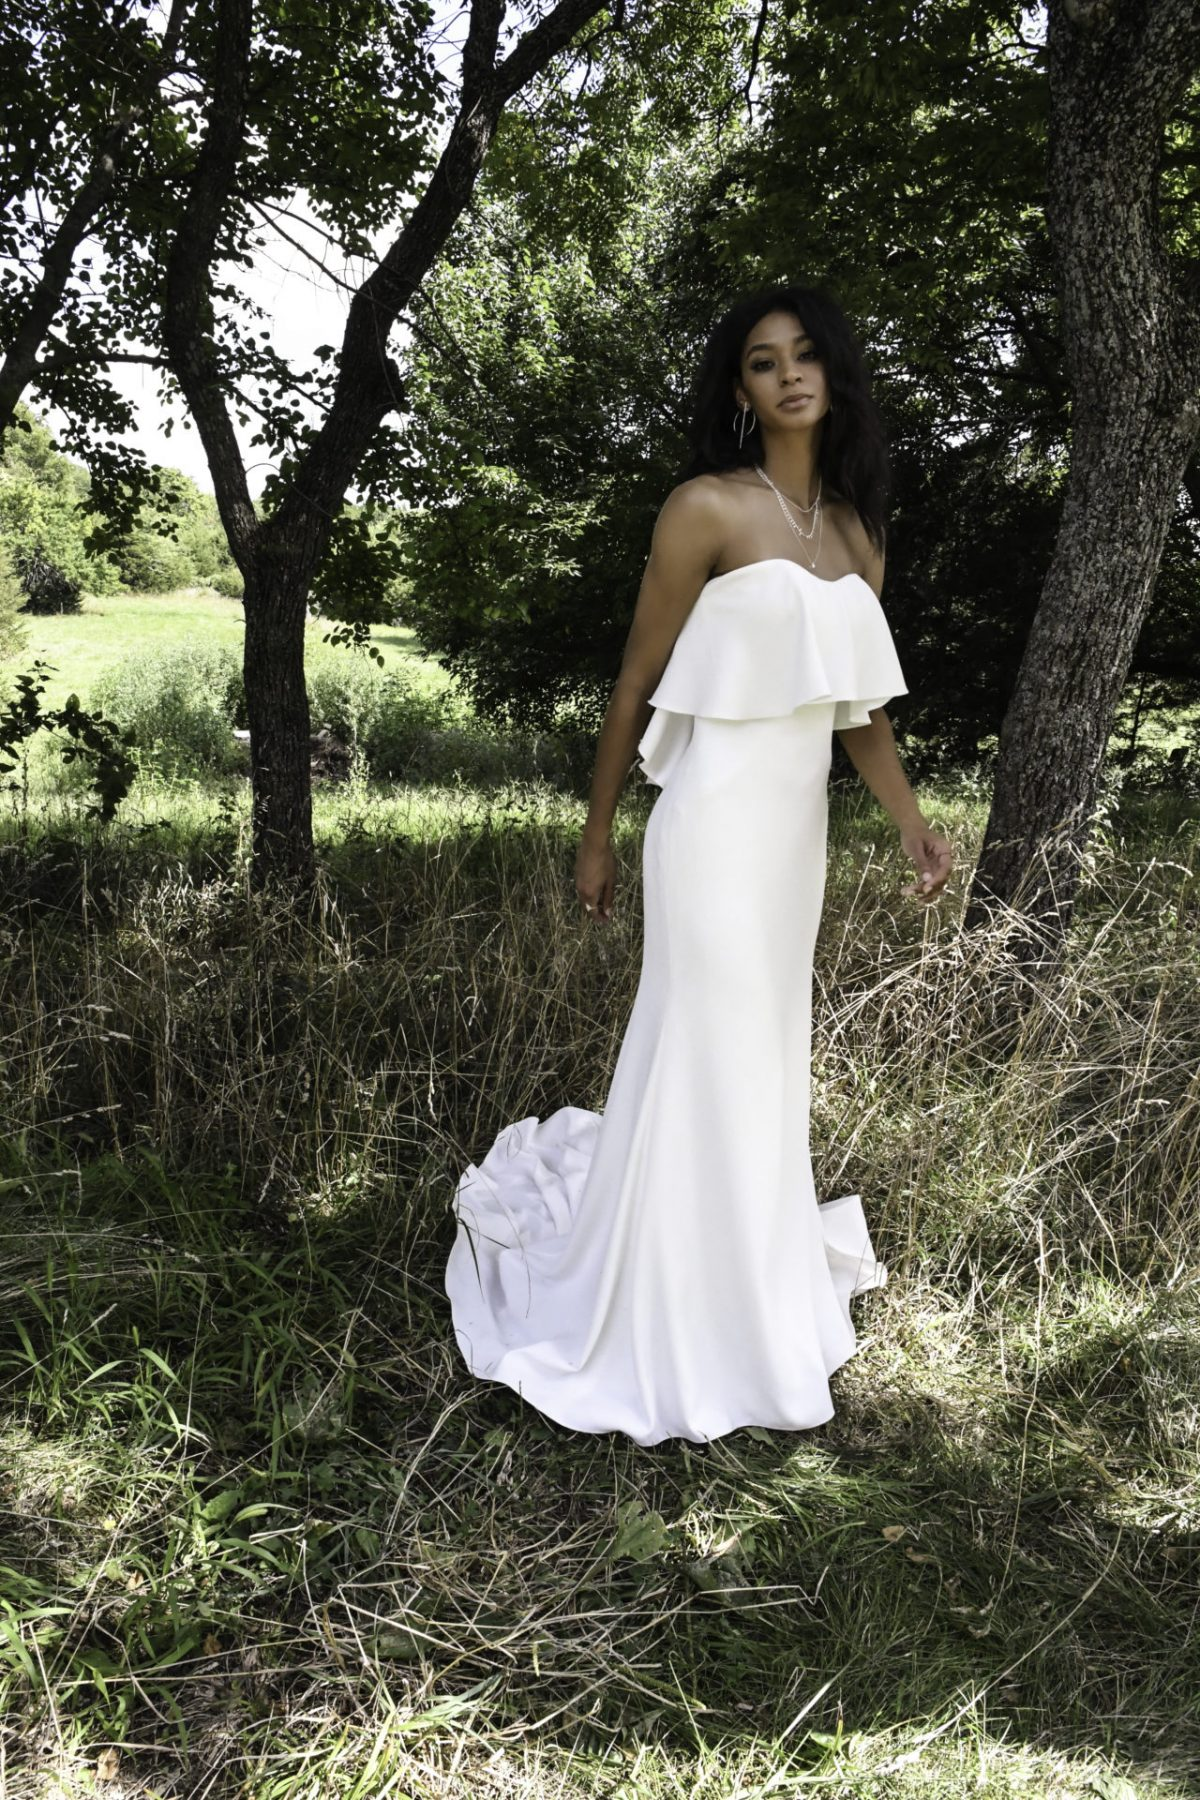 Tasma from All who wander available at Emily bridalwear in Sheffield